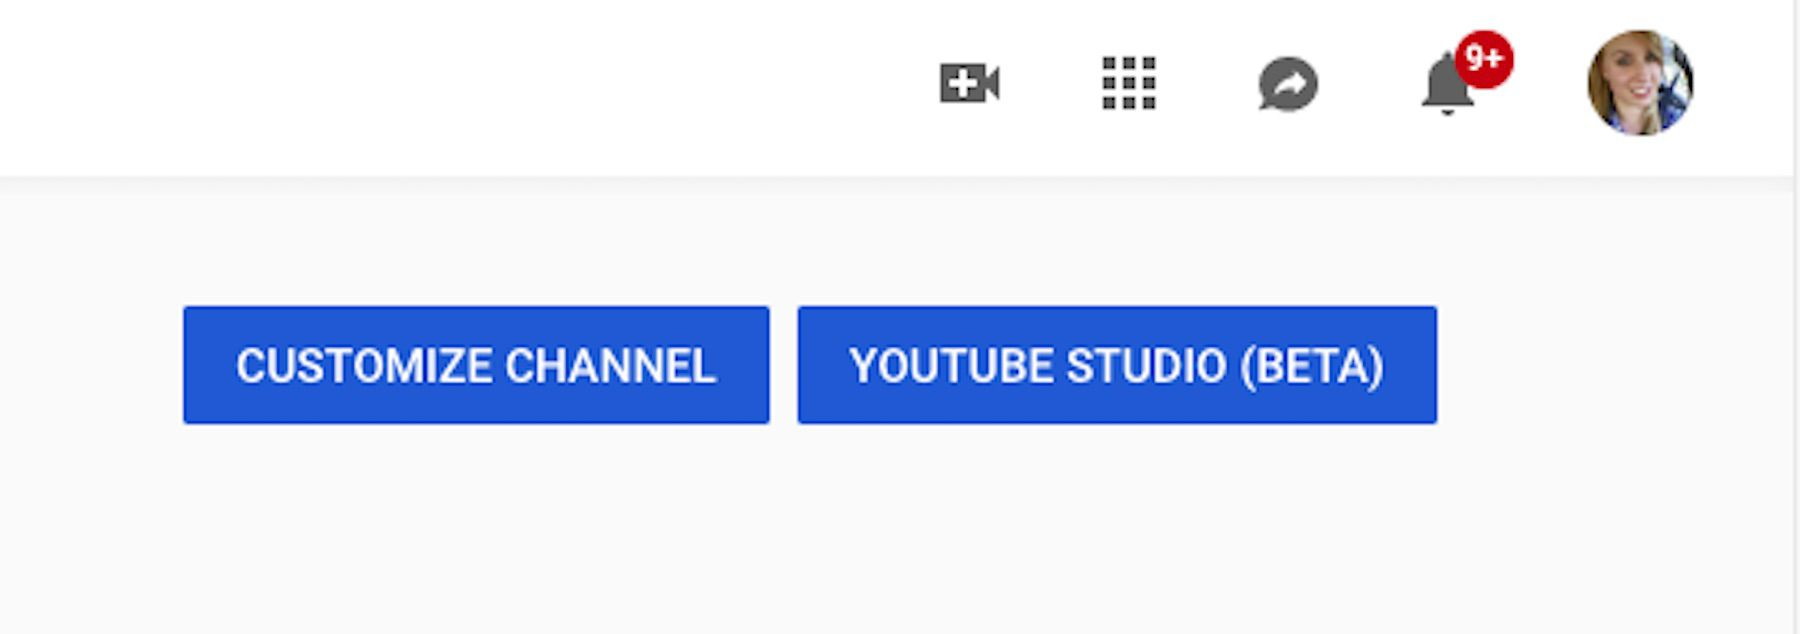 YouTube channel management features